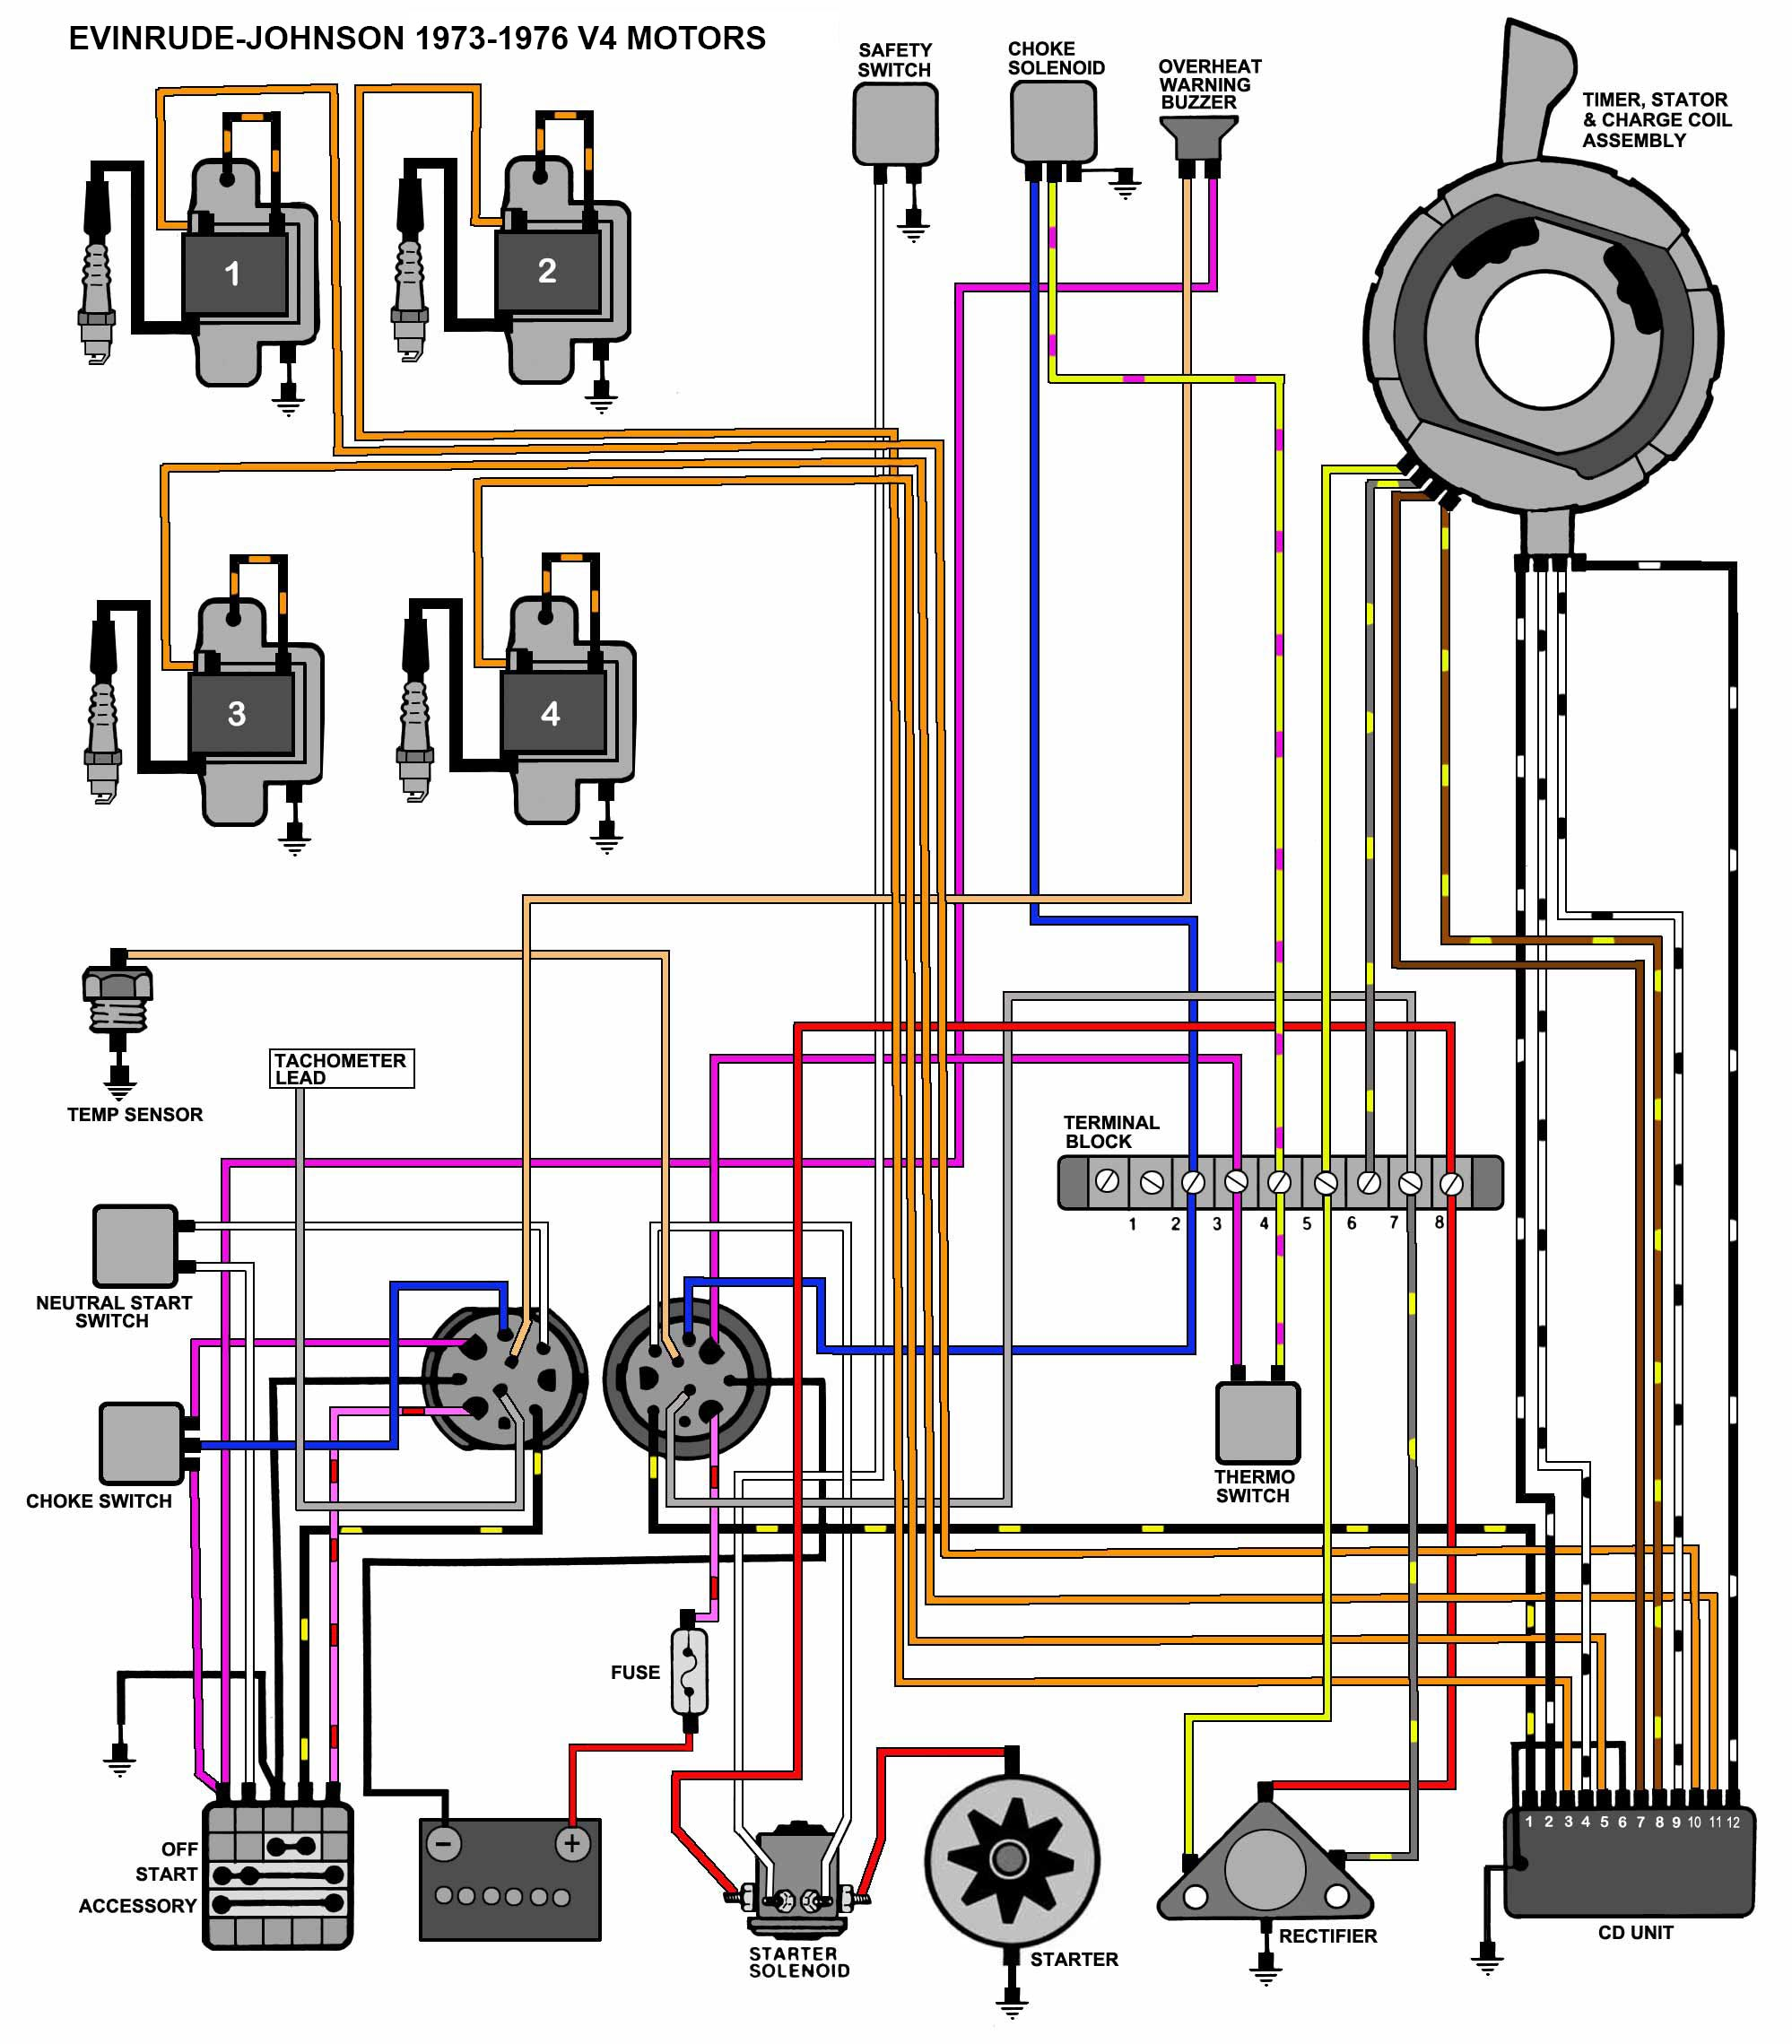 johnson 115 v4 outboard wiring diagram pdf 2 7 fearless wonder de \u2022wiring schematics for evinrude 115 hp wiring diagram rh 015 siezendevisser nl johnson 150 outboard motor diagram 40 hp johnson wiring diagram